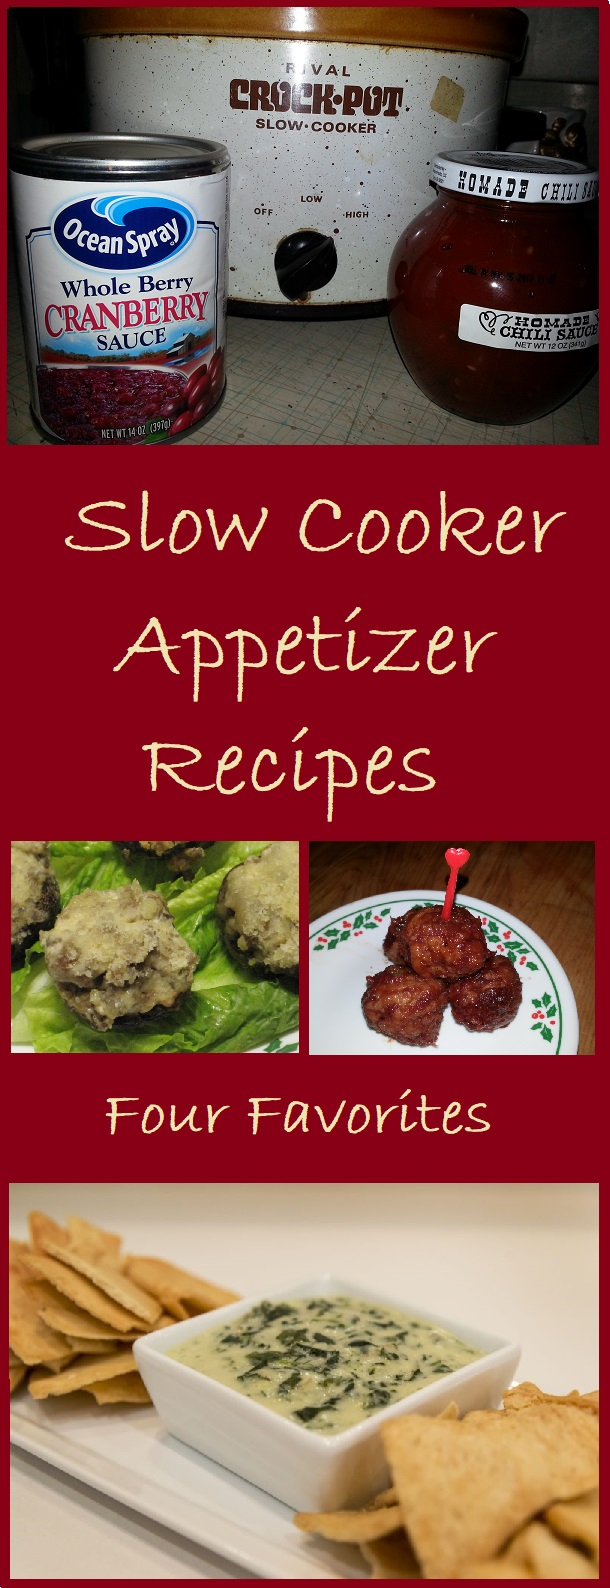 4 simple and delicious appetizer recipes to make in your slow cooker.